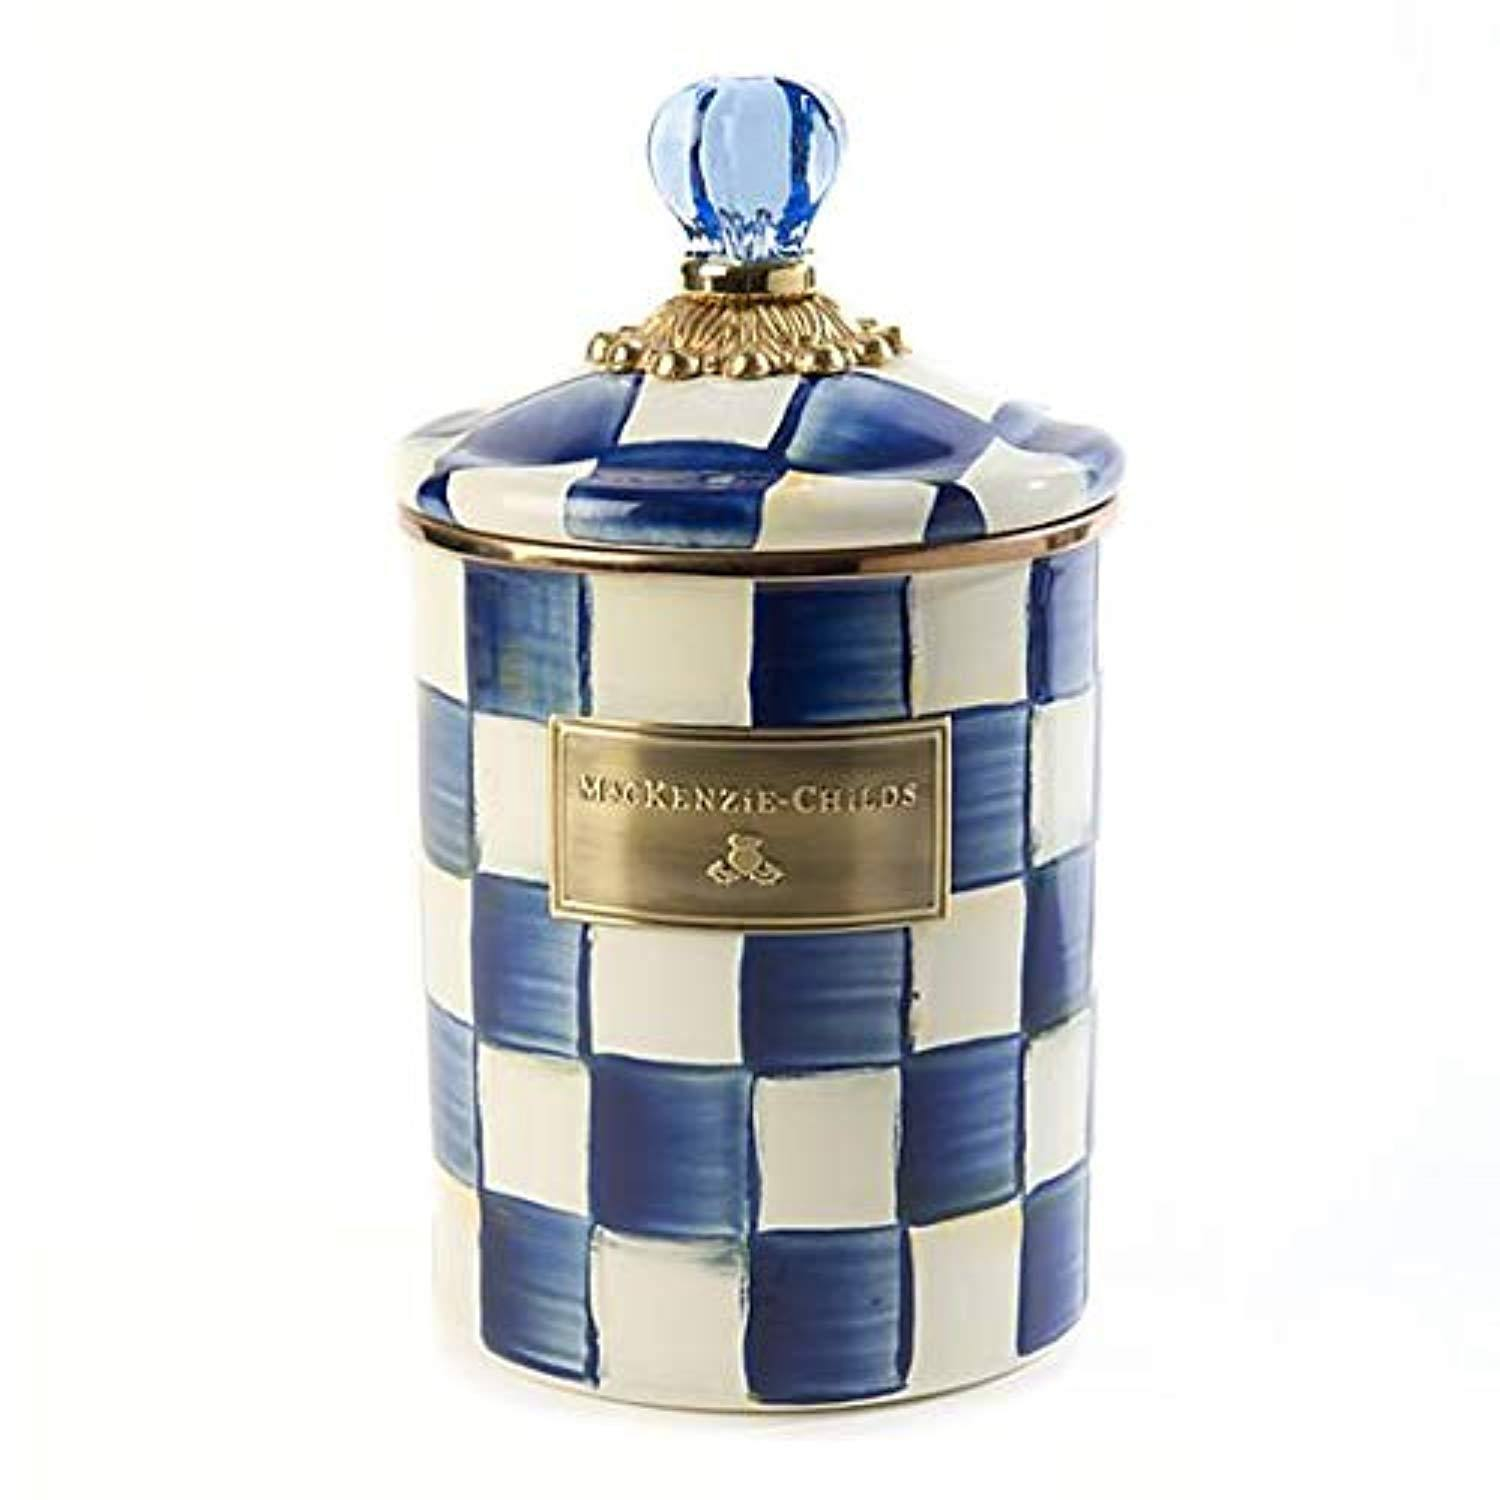 Mackenzie-Childs Royal Check Enamel Canister - Medium